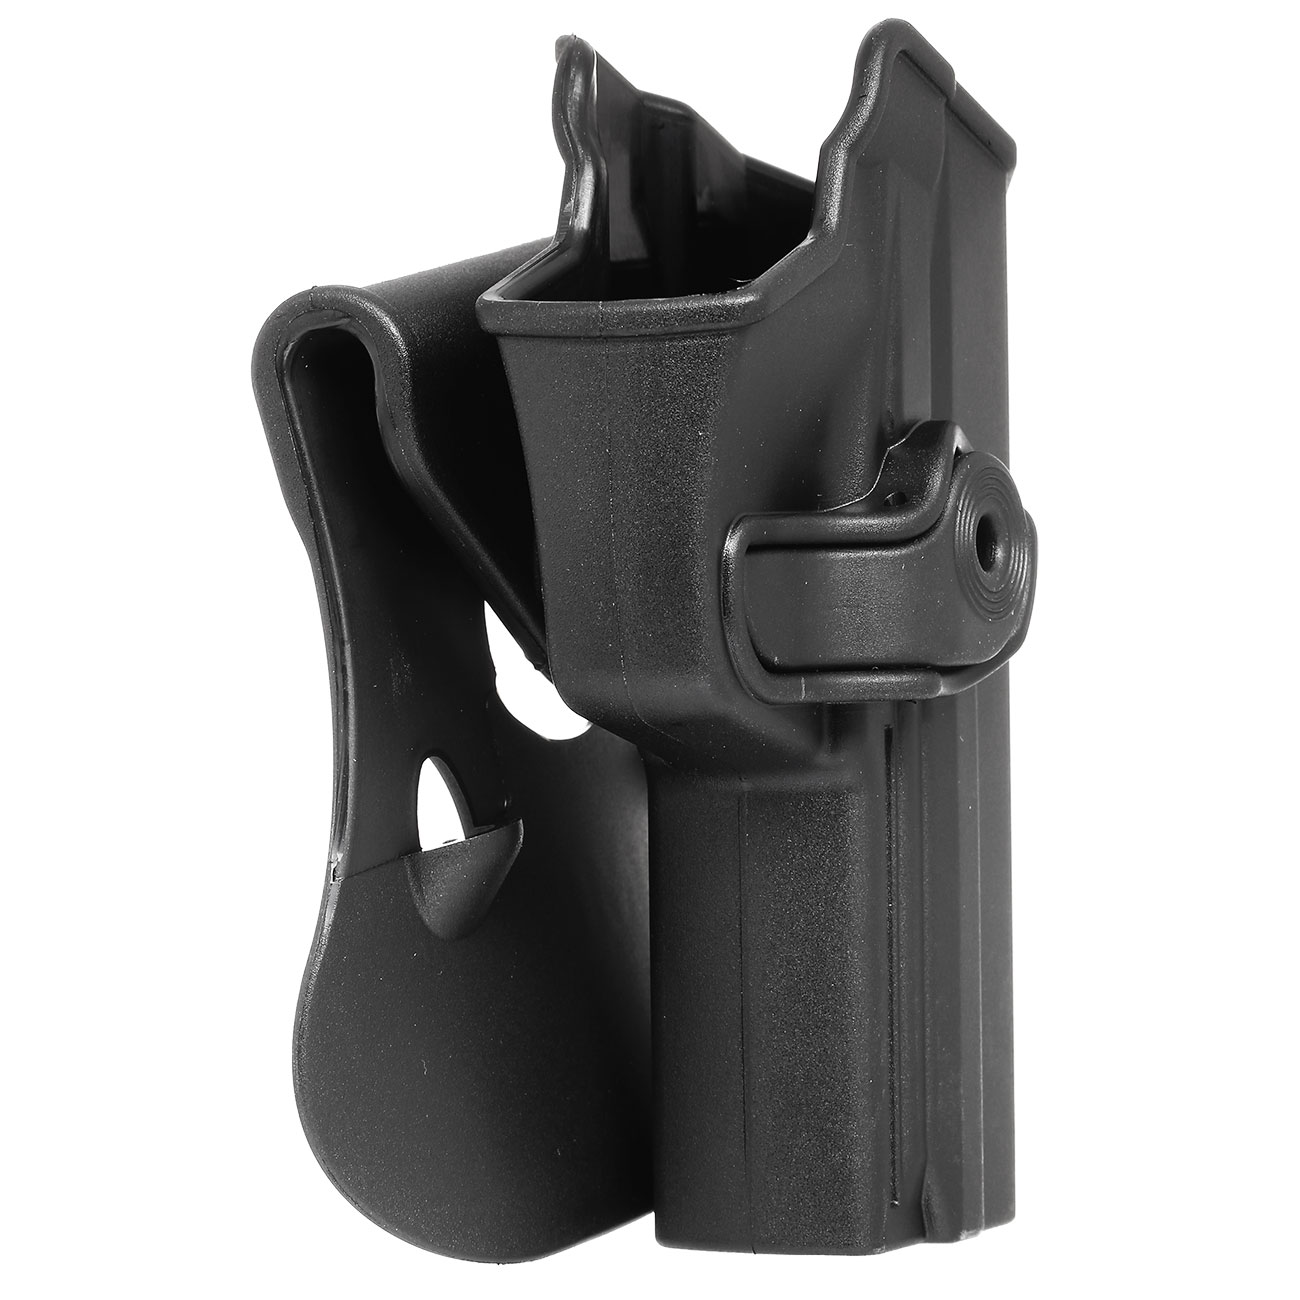 IMI Defense Level 2 Holster Kunststoff Paddle für H&K USP / P8 9mm schwarz 1